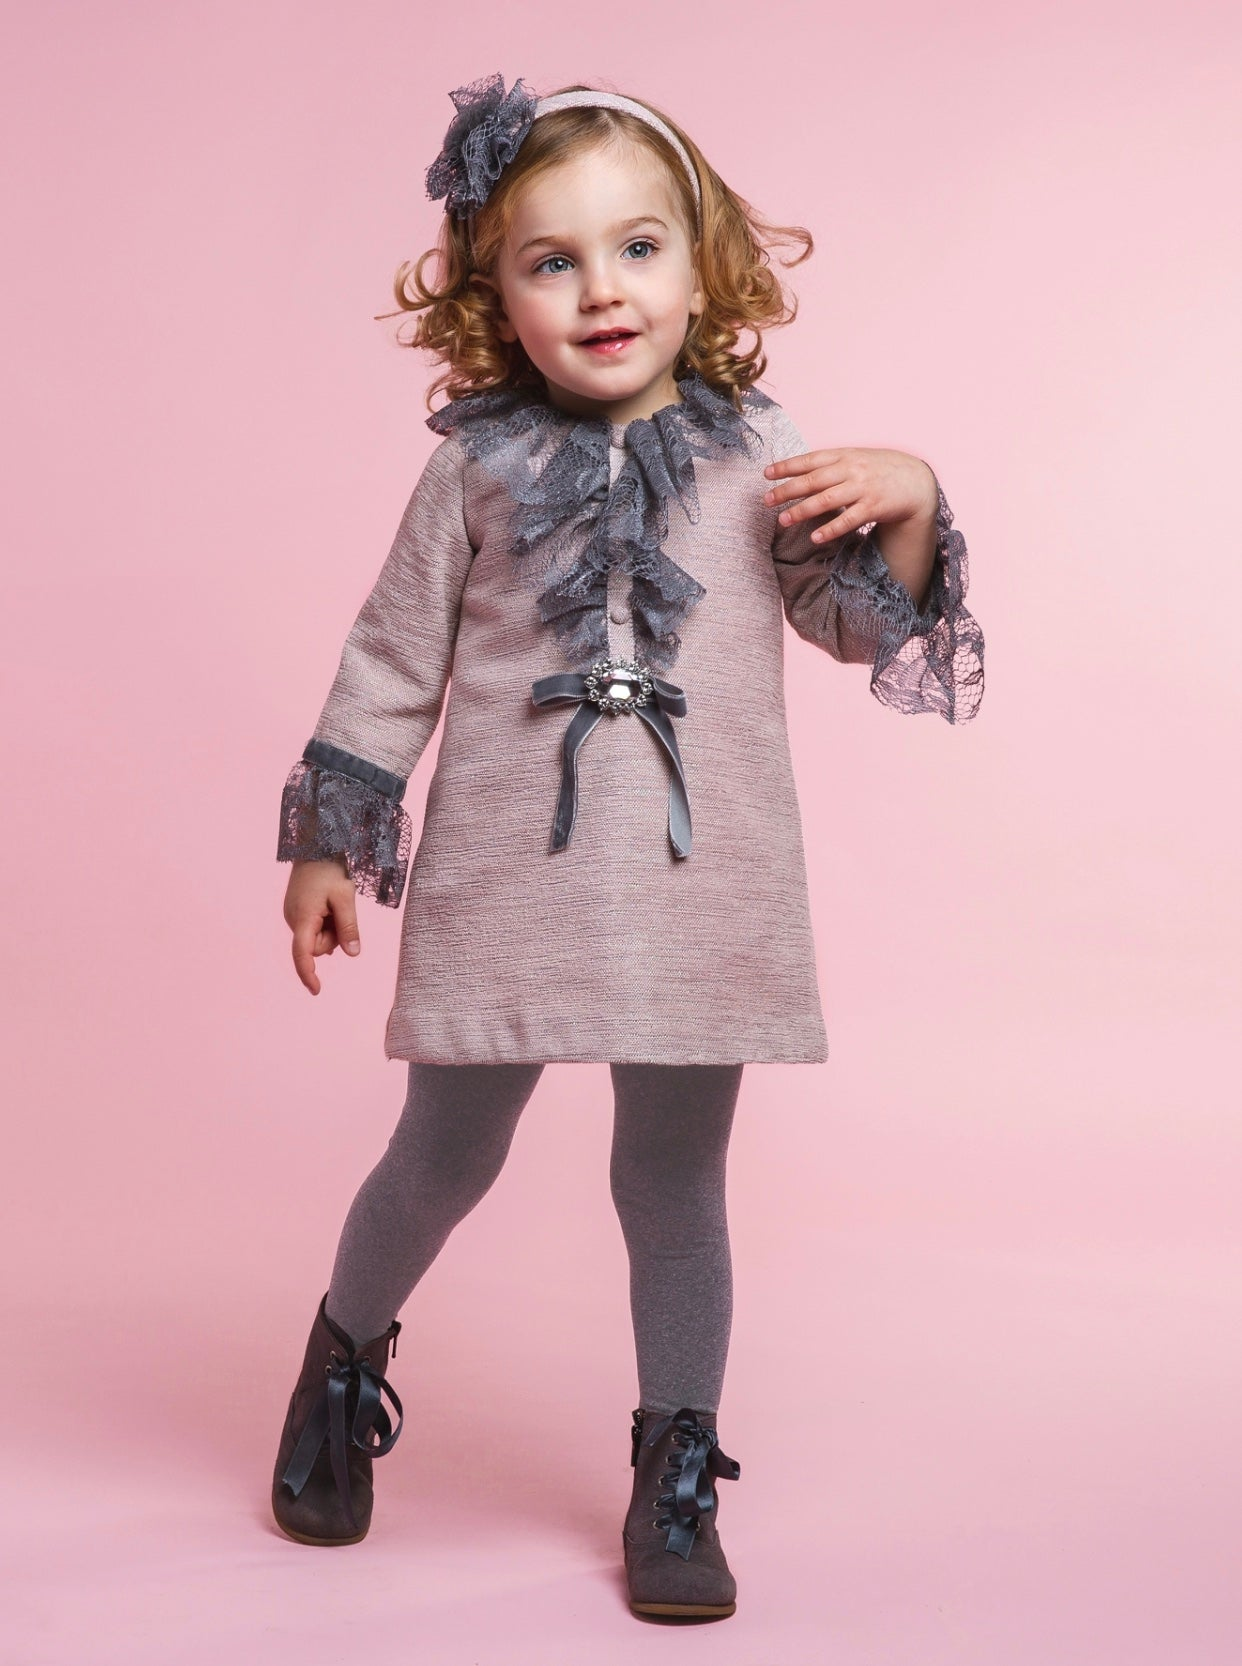 Rochy AW19/20 Dusty pink dress with lace details